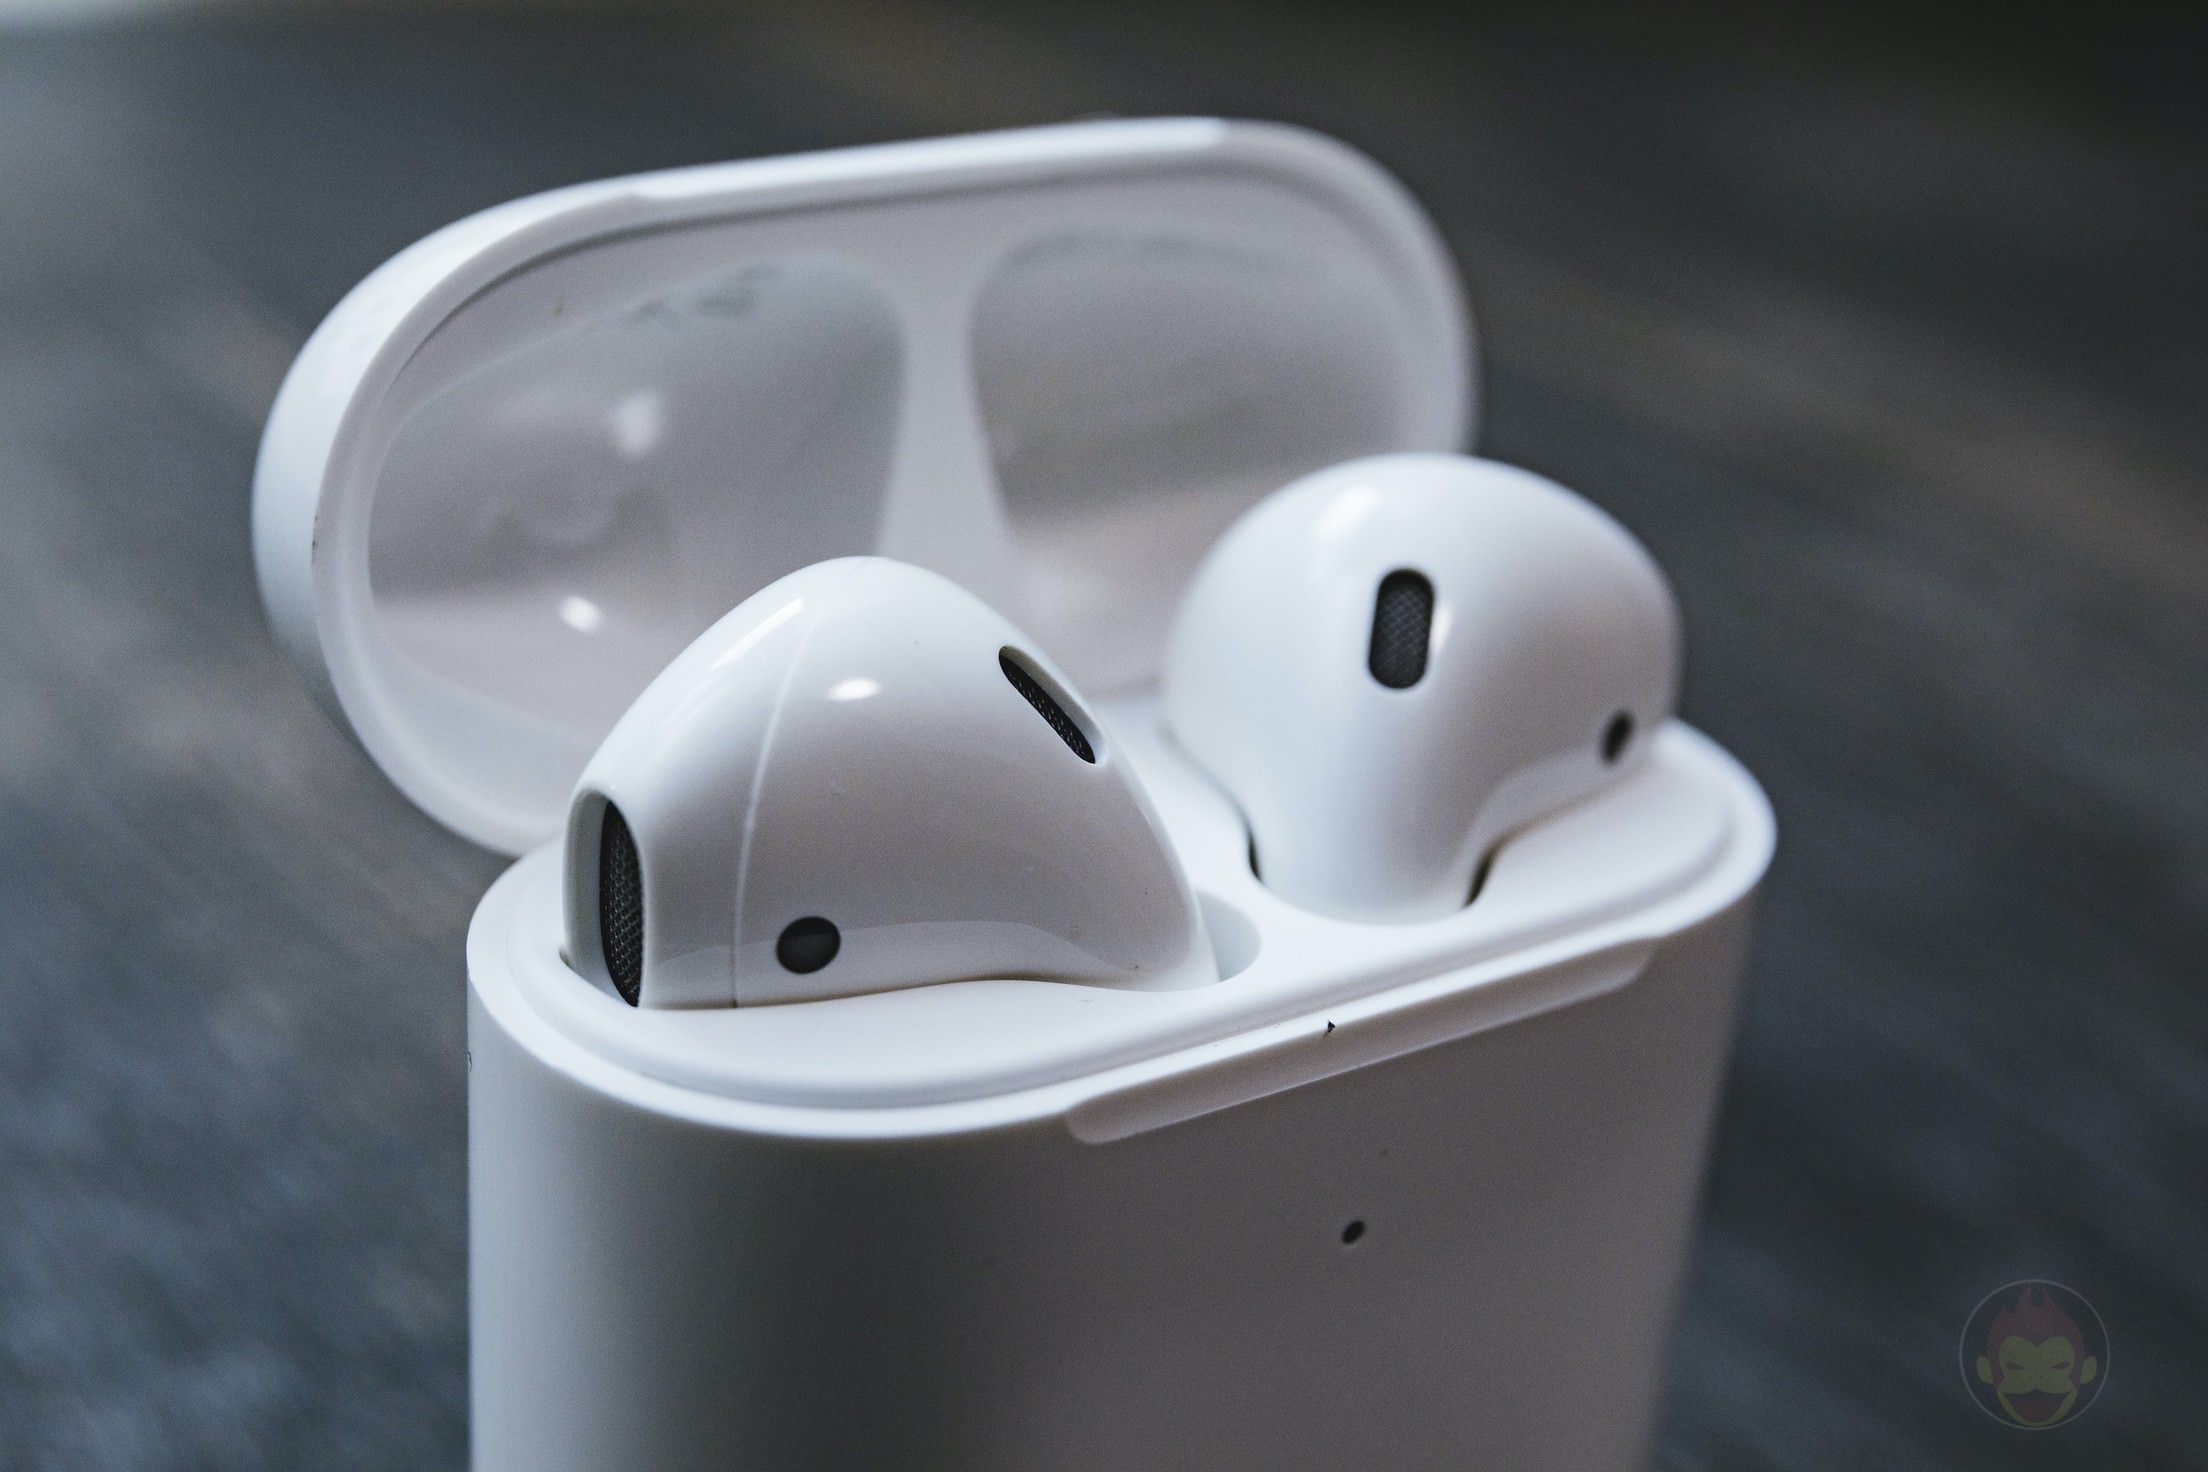 AirPods-2nd-Generation-2019-Review-21.jpg